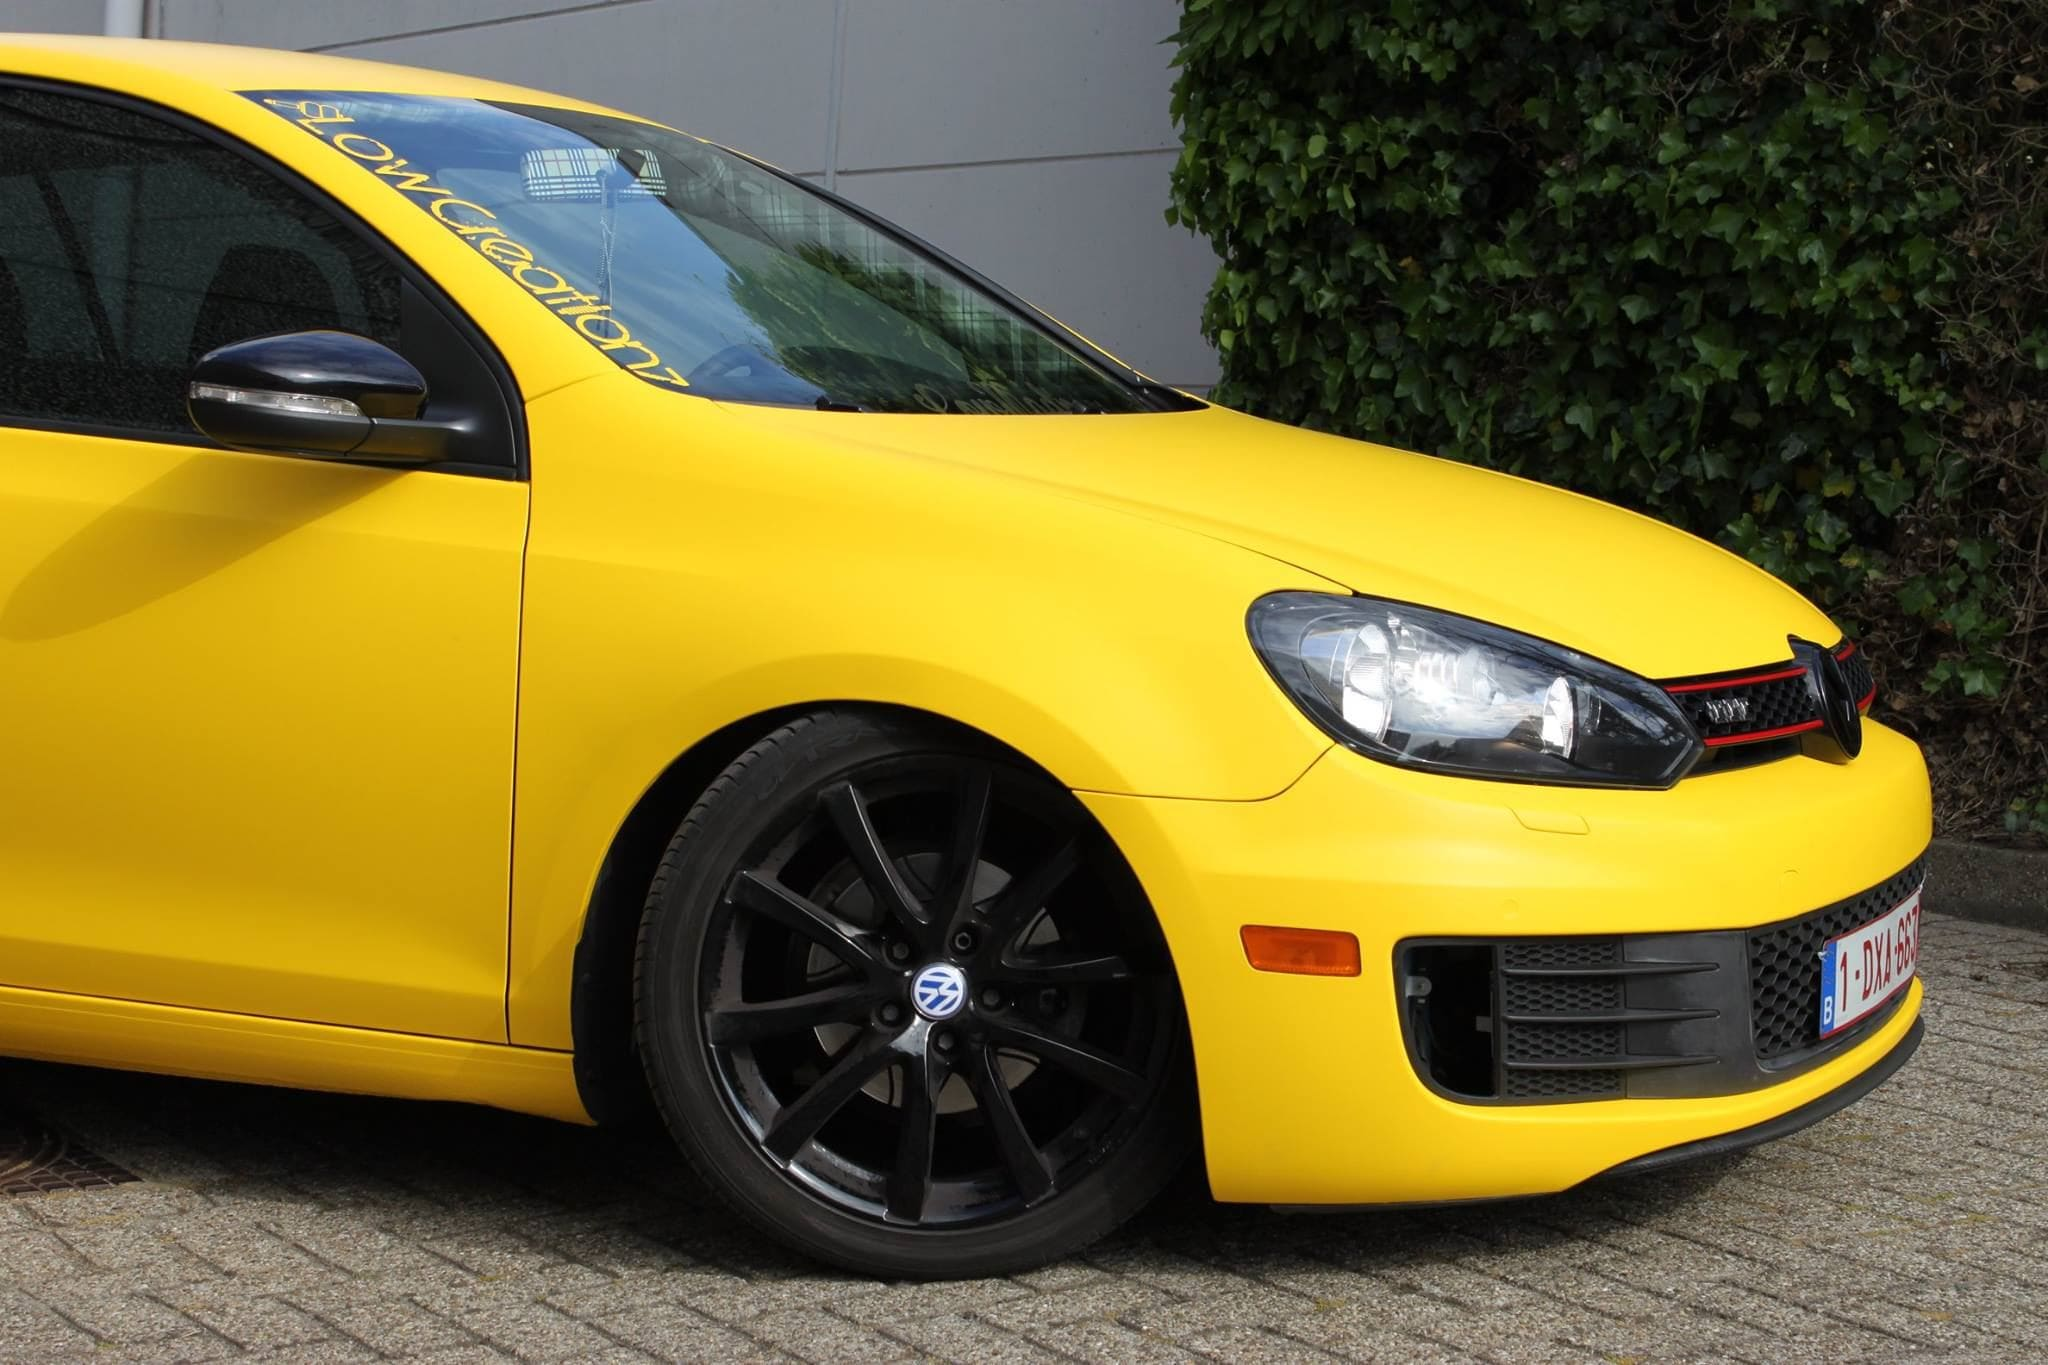 Volkswagen Golf 6 met Mat Bright Yellow Wrap voor Low Creationz, Carwrapping door Wrapmyride.nu Foto-nr:7592, ©2020